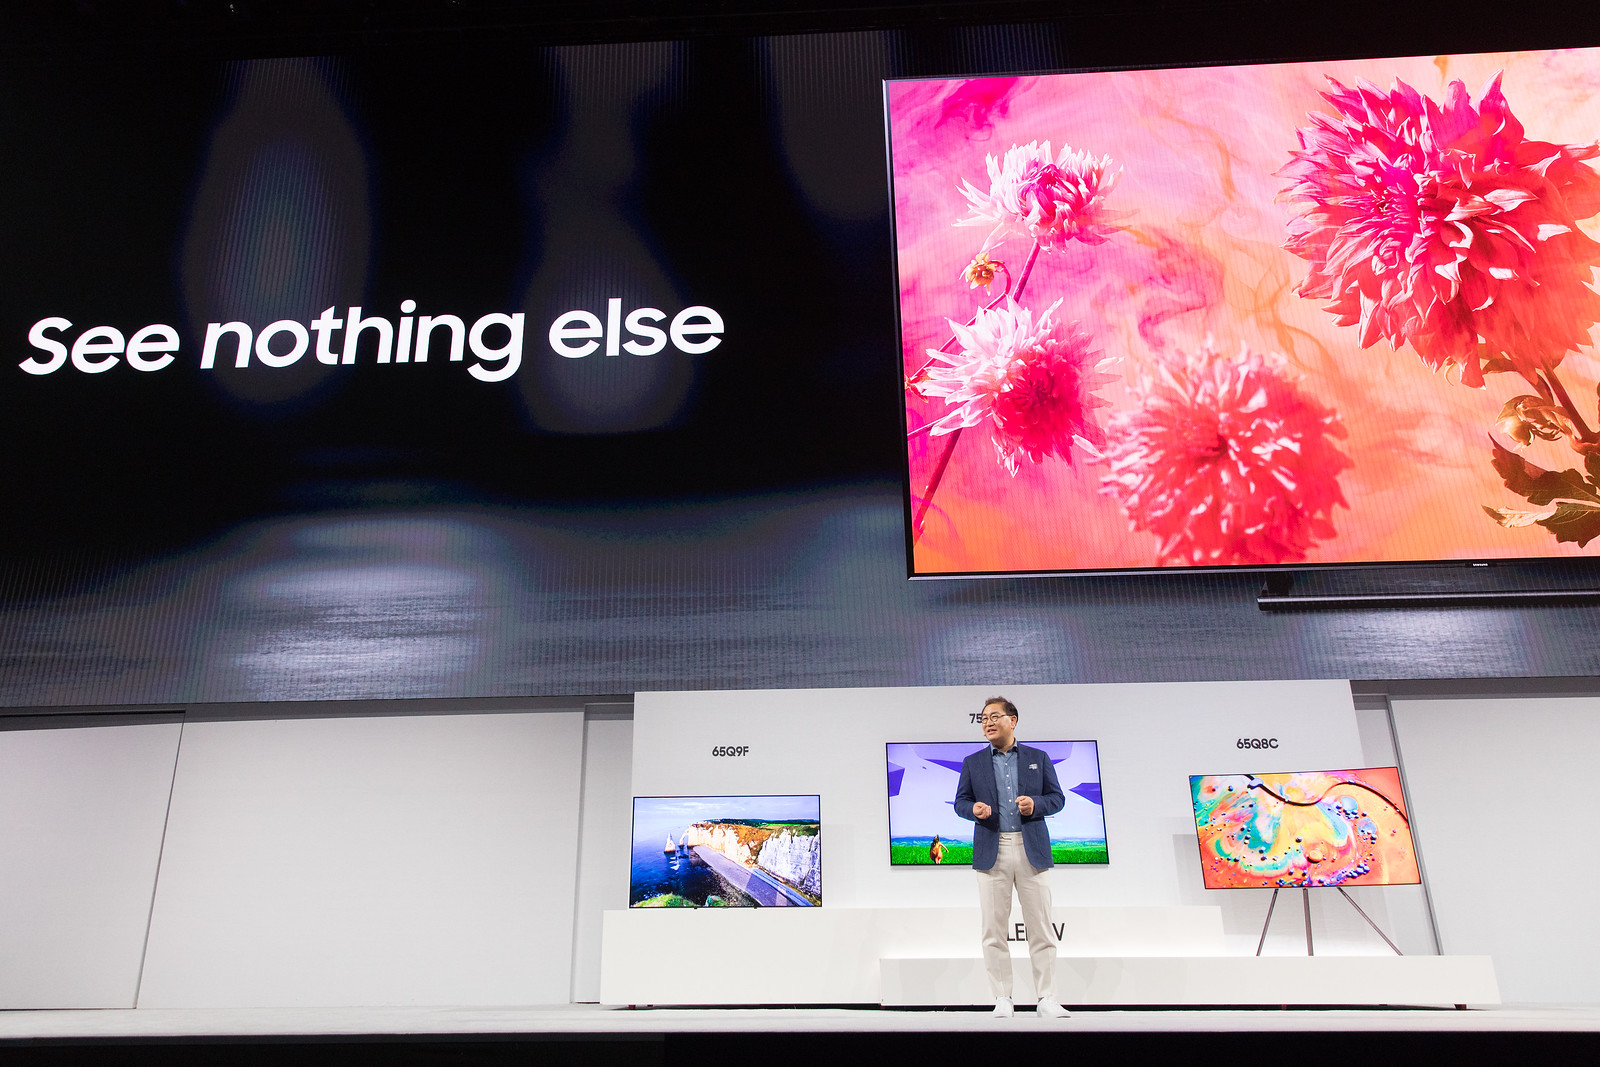 Samsung's 2018 TV Lineup Comes With Bixby, HDR10+ And More